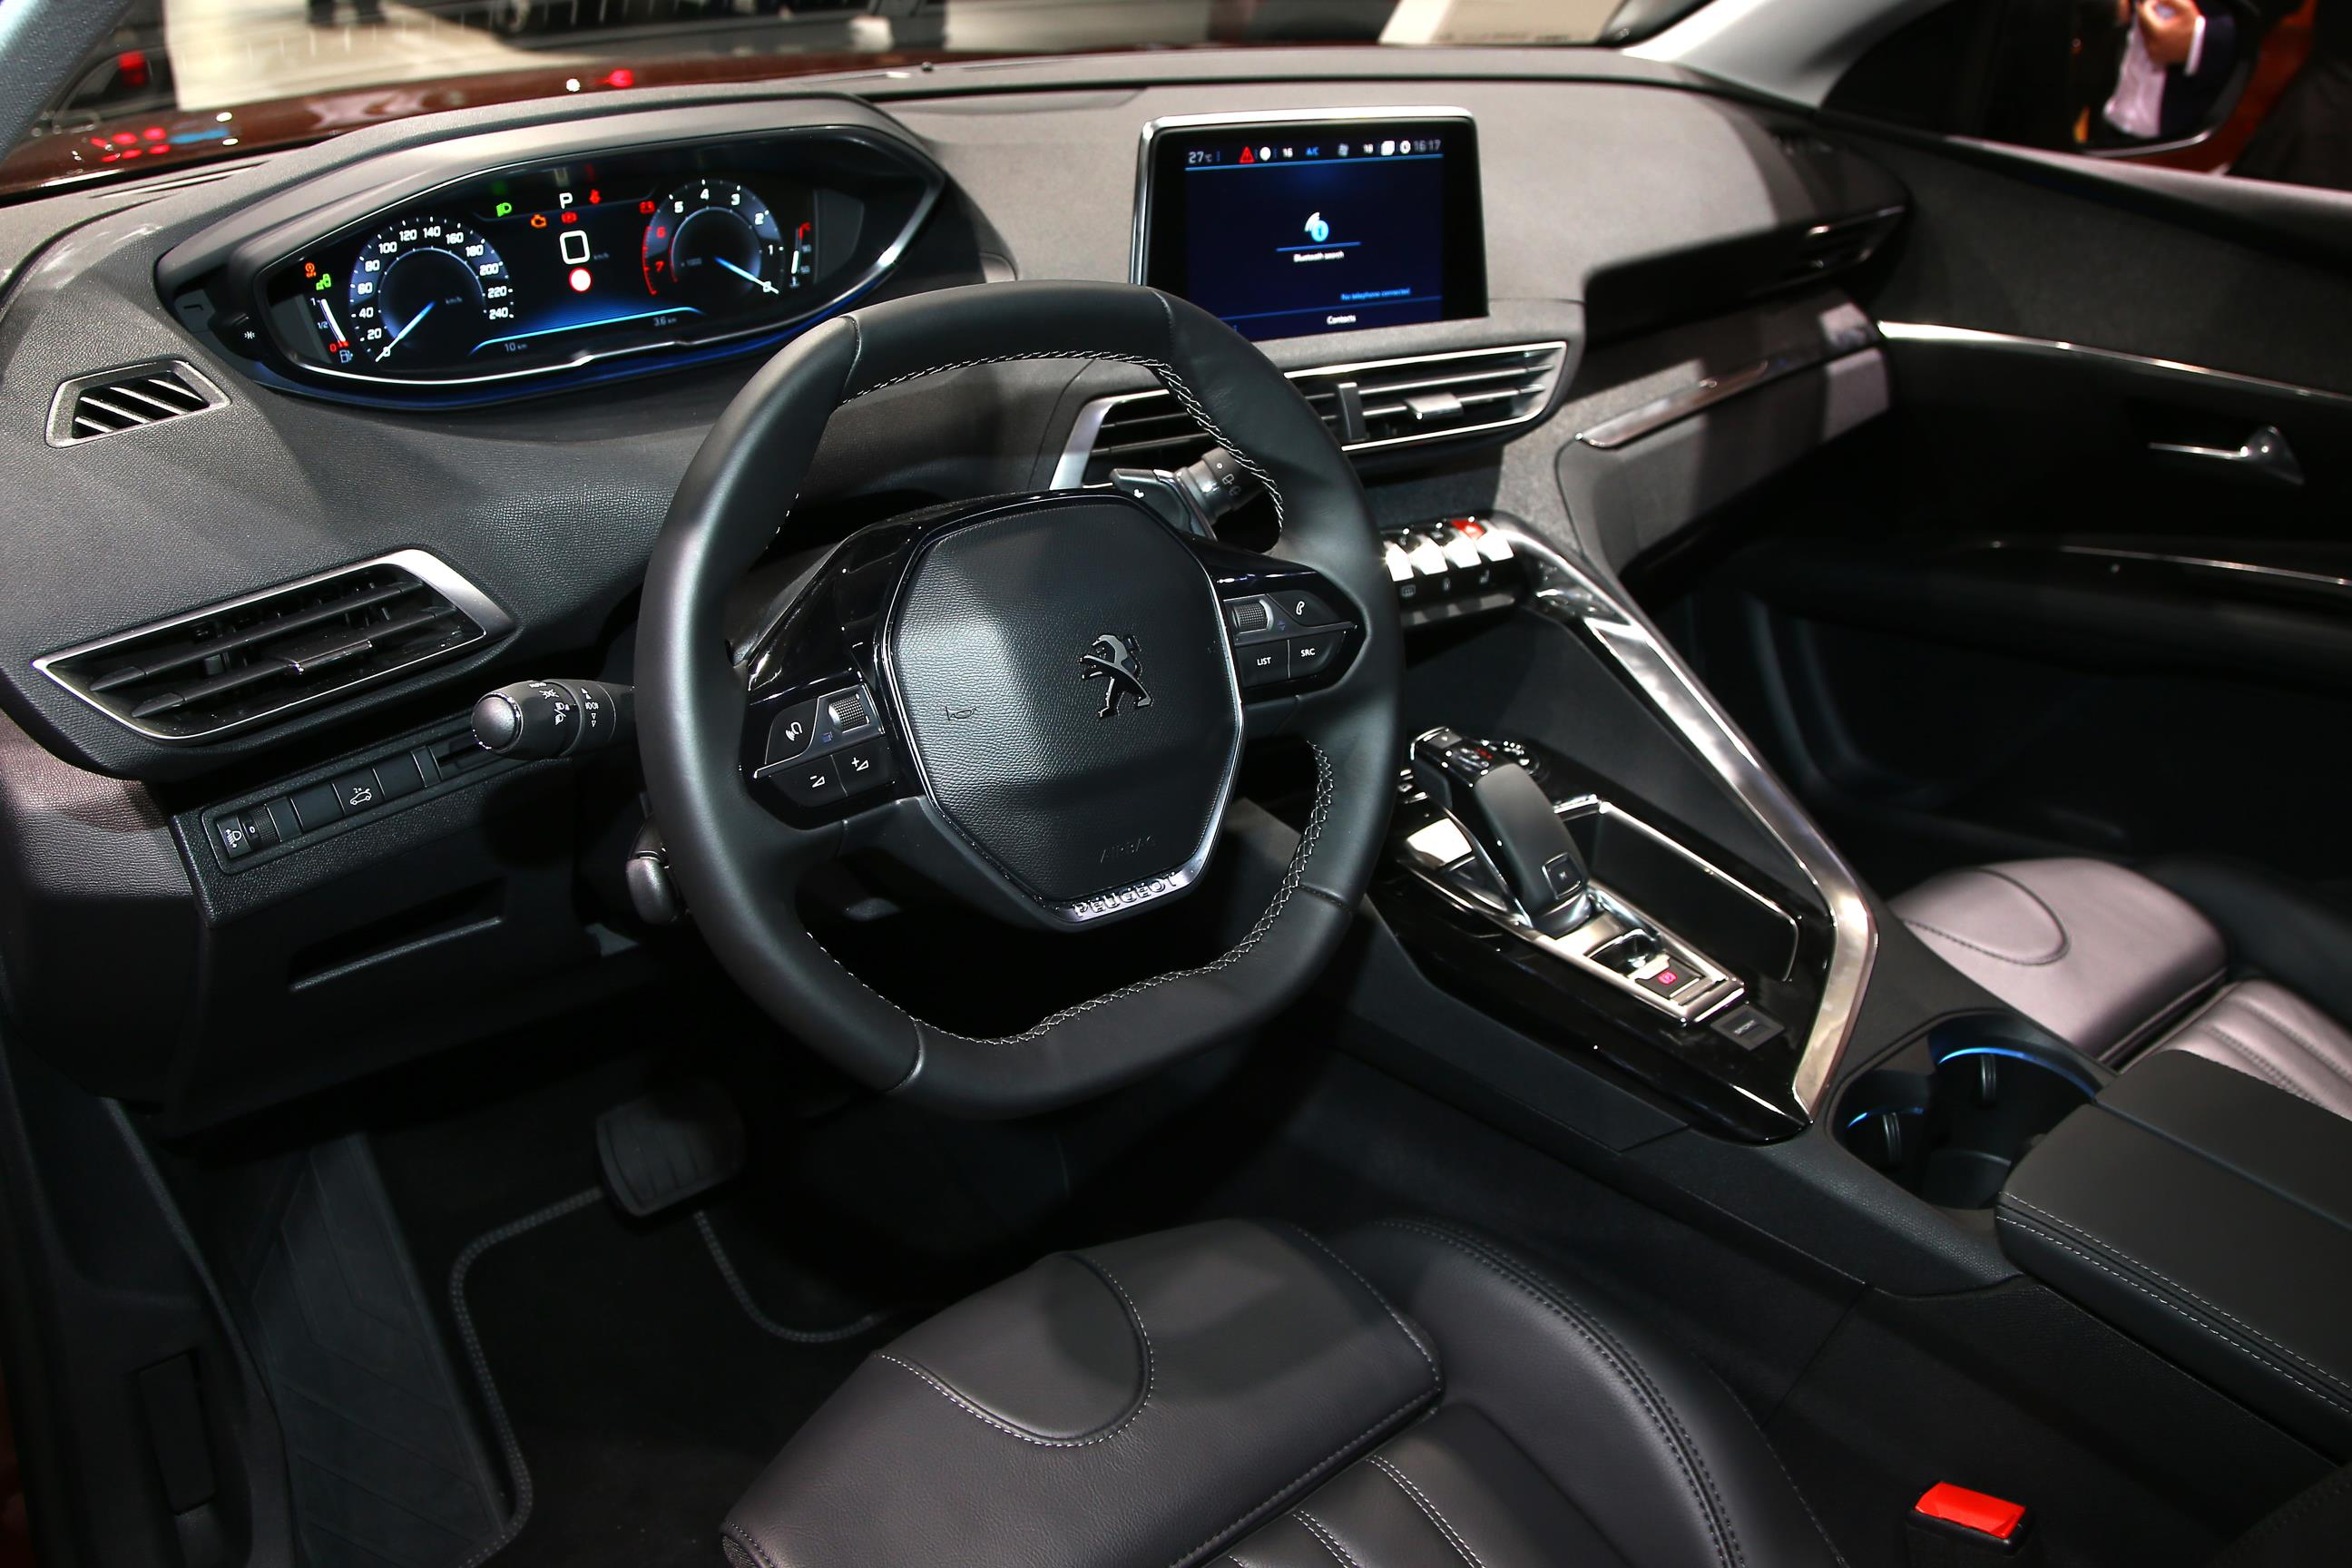 peugeot 3008 gt combines concept interior with hot hatch engine